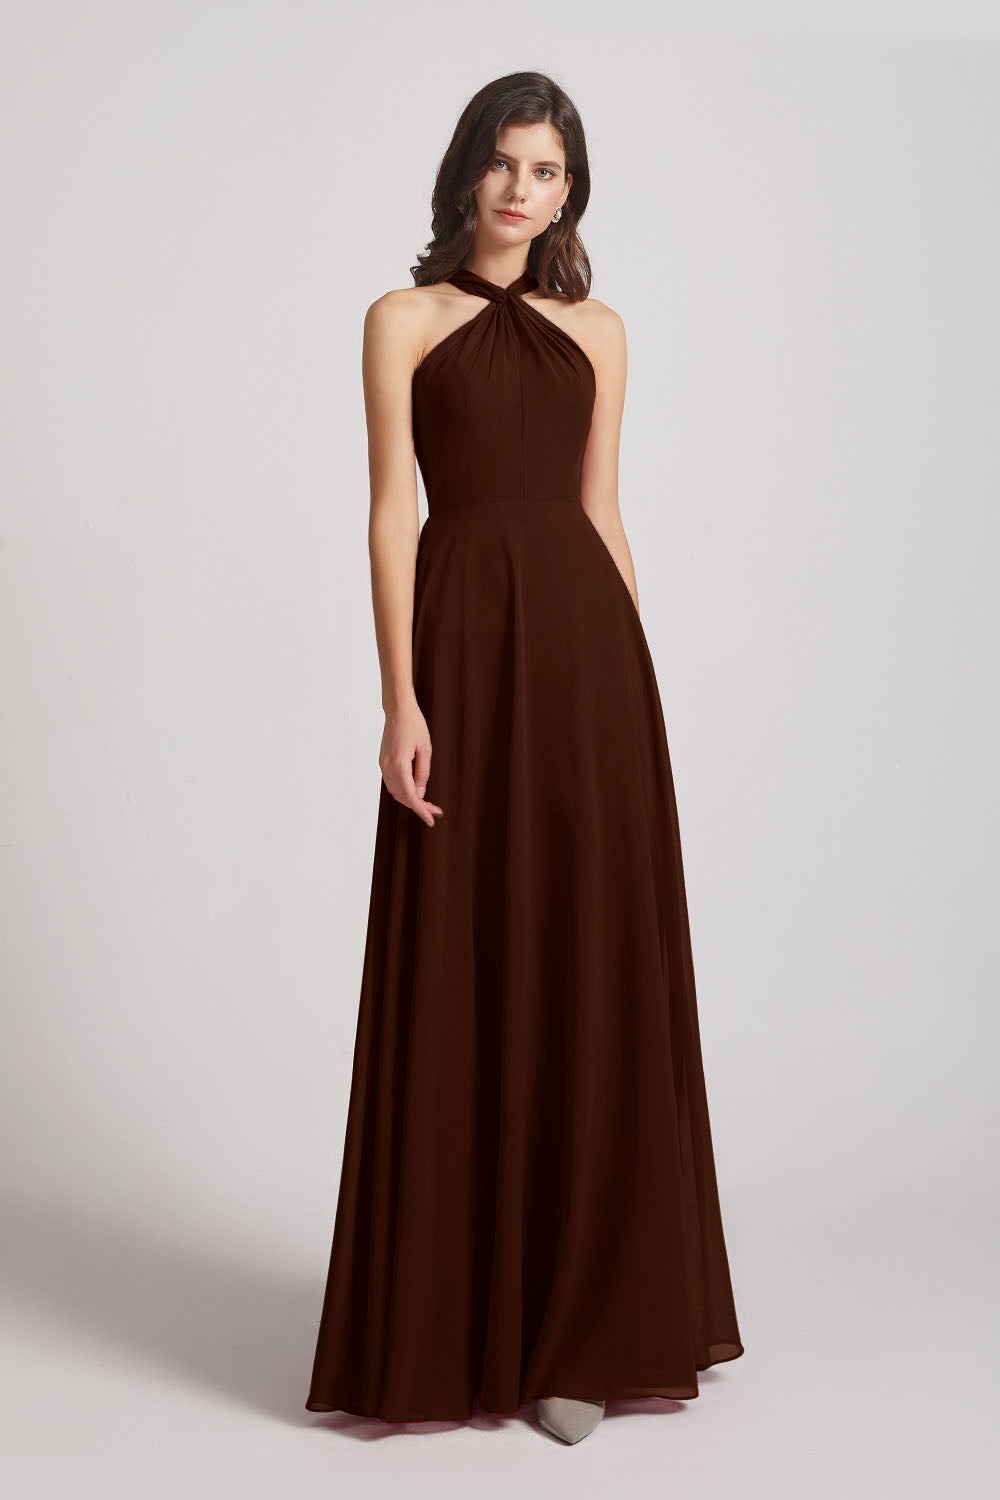 Alfa Bridal Chocolate Floor Length Chiffon Bridesmaid Dresses with Criss Cross Neckline (AF0113)